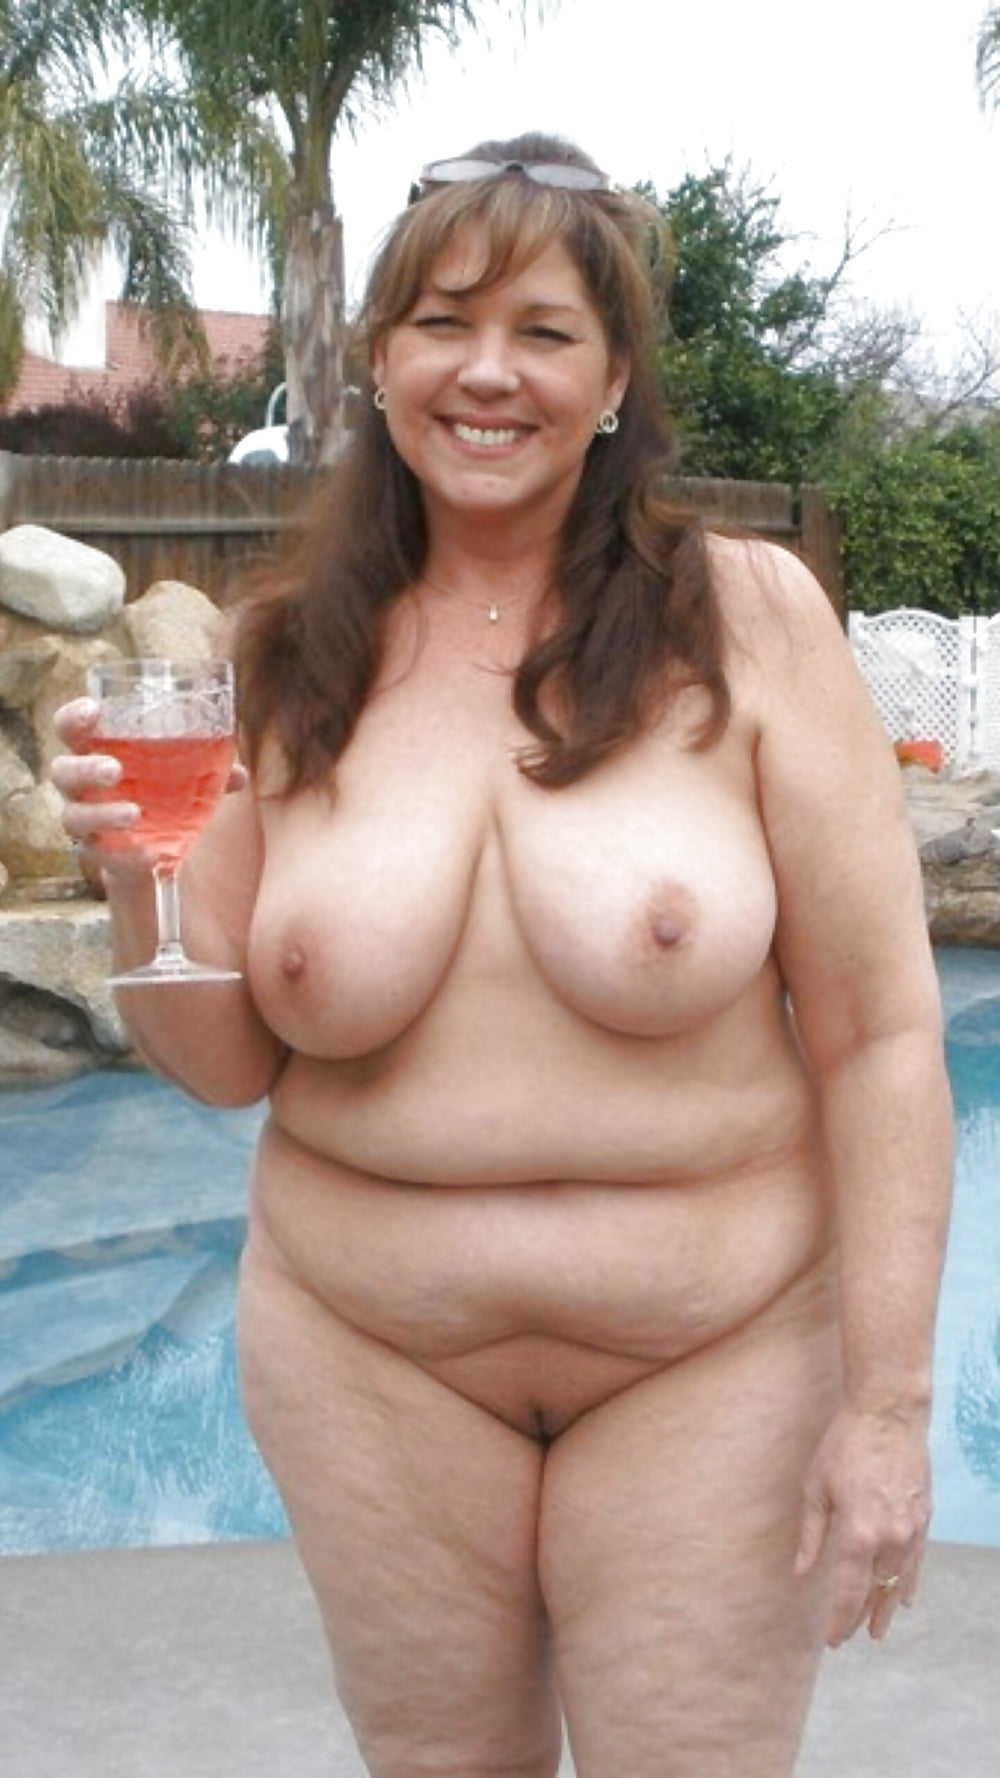 Superstar Naked And Curvy Pics